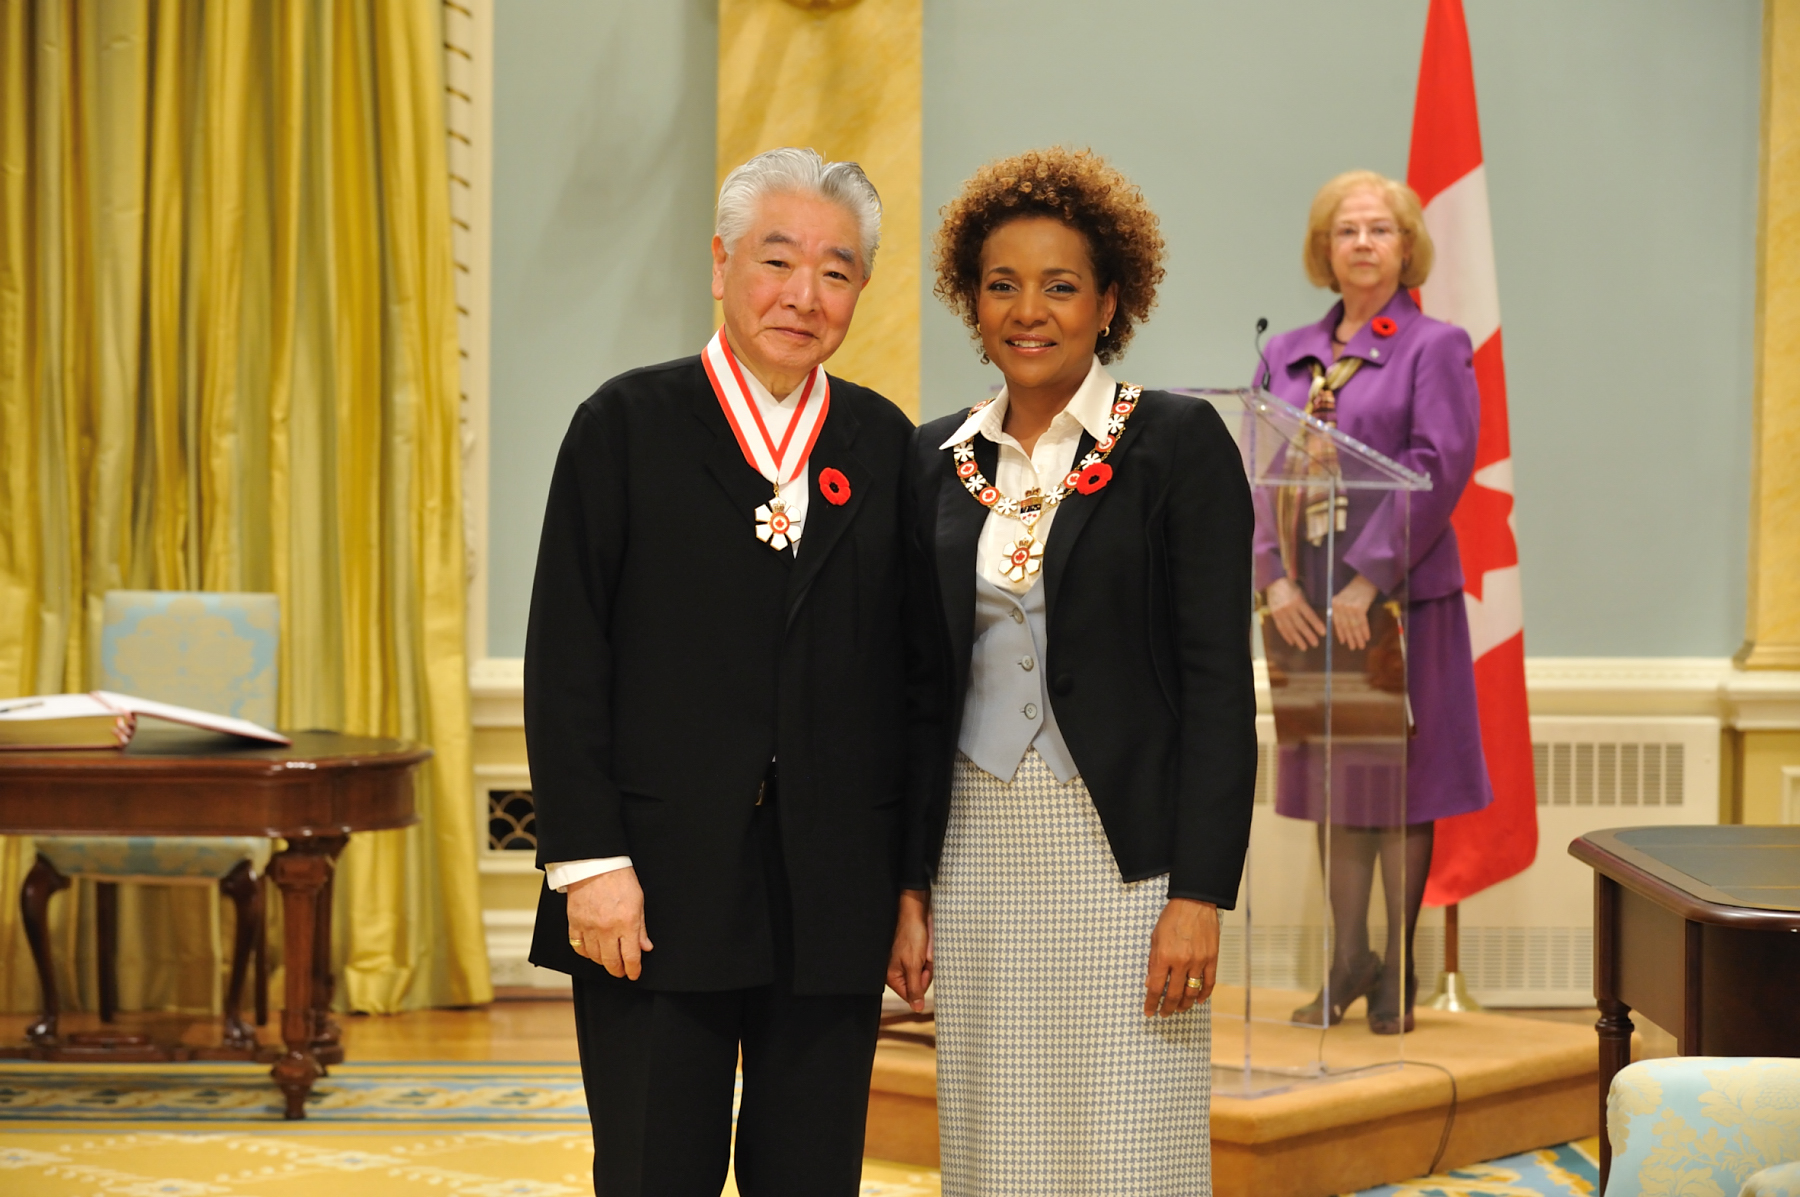 Her Excellency the Right Honourable Michaëlle Jean, Governor General of Canada, presented the insignia of Companion of the Order of Canada to Raymond Moriyama, C.C., O.Ont., who is one of the world's most innovative architects and urban planners.